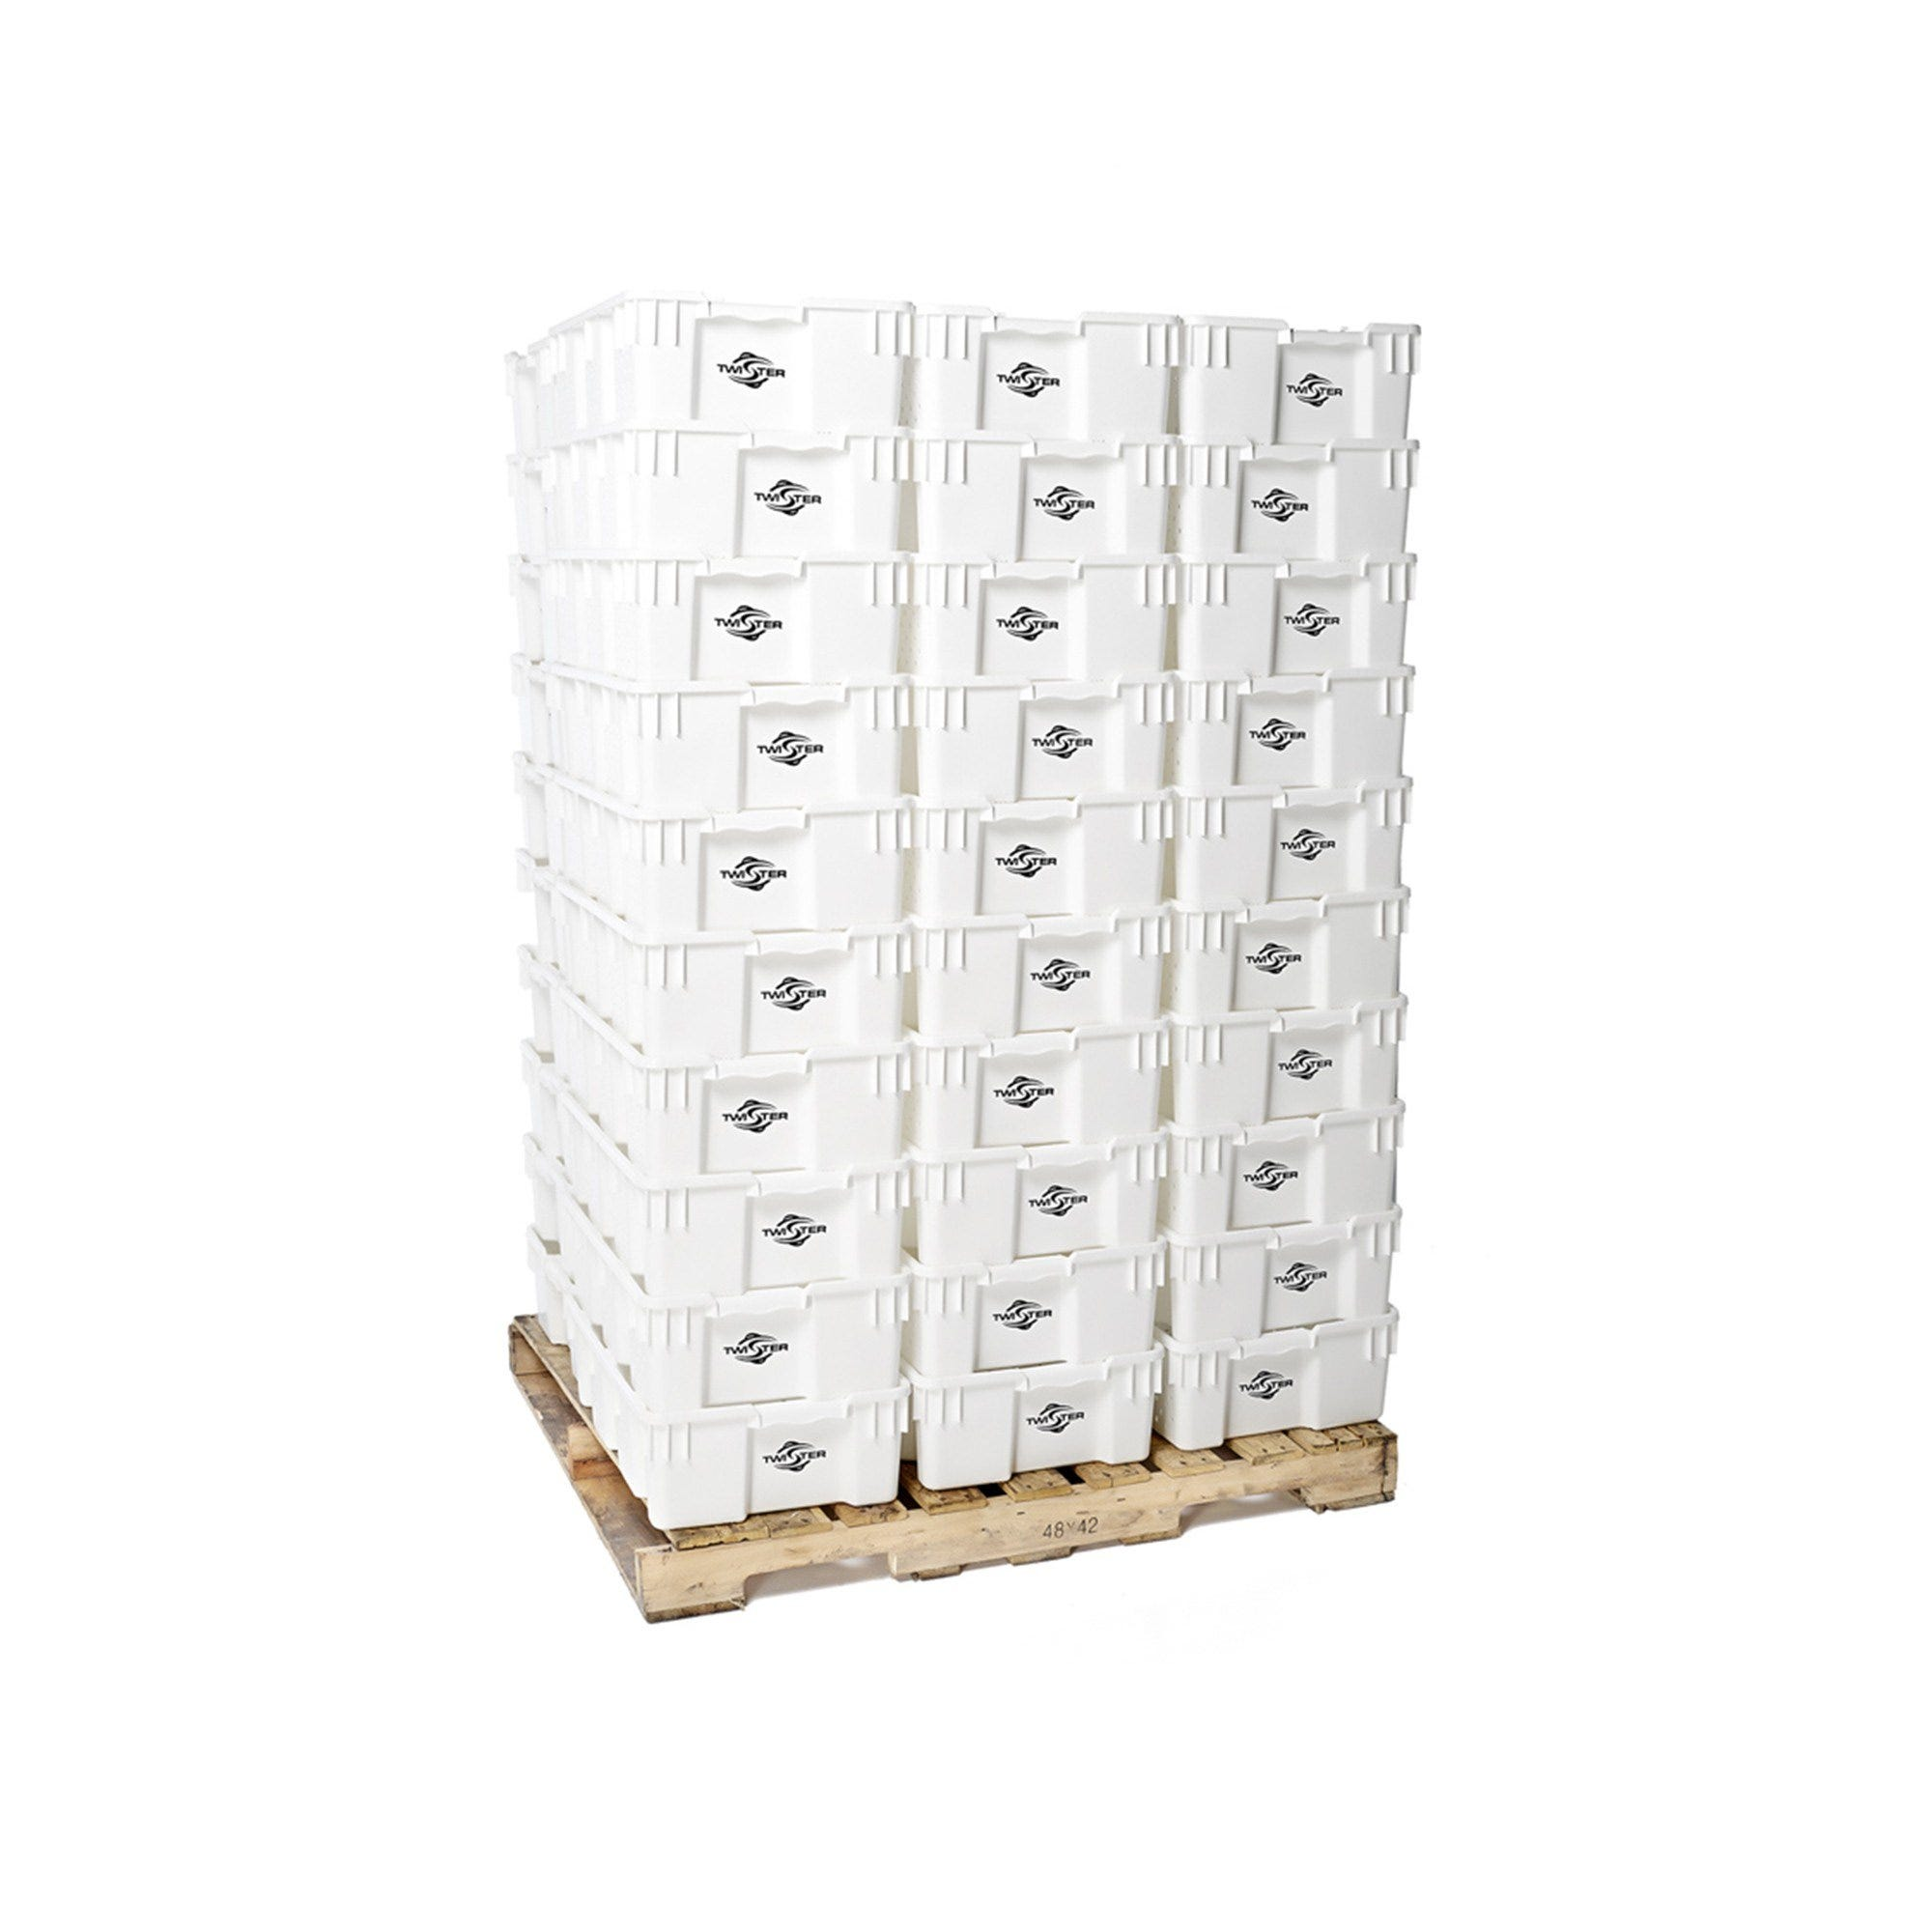 Twister Stackable Handling Tray - 100/Pack (Pallet) These trays from Twister are perfect for handling and freezing product. Designed to stack on top of each other for maximum airflow, you can easily stack 50 of these ventilated trays per palette for easy storage and movement to and from rooms or locations. High-density food-grade polyethylene is 100% freezer and dishwasher safe. Maximum durability. Trim straight into these bad boys!! Features Will stack and nest with 180-degree turn Containers will nest at a ratio of 2.5:1 Ventilation holes on sides & bottom U. V. stabilized Easy access handles Freezer safe 100% recyclable material Food-grade high-density polyethylene Dishwasher safe Dimensions 24  X 15.75  X 7.25  (OD) 22.64  X 14.76  X 7.09  (ID)